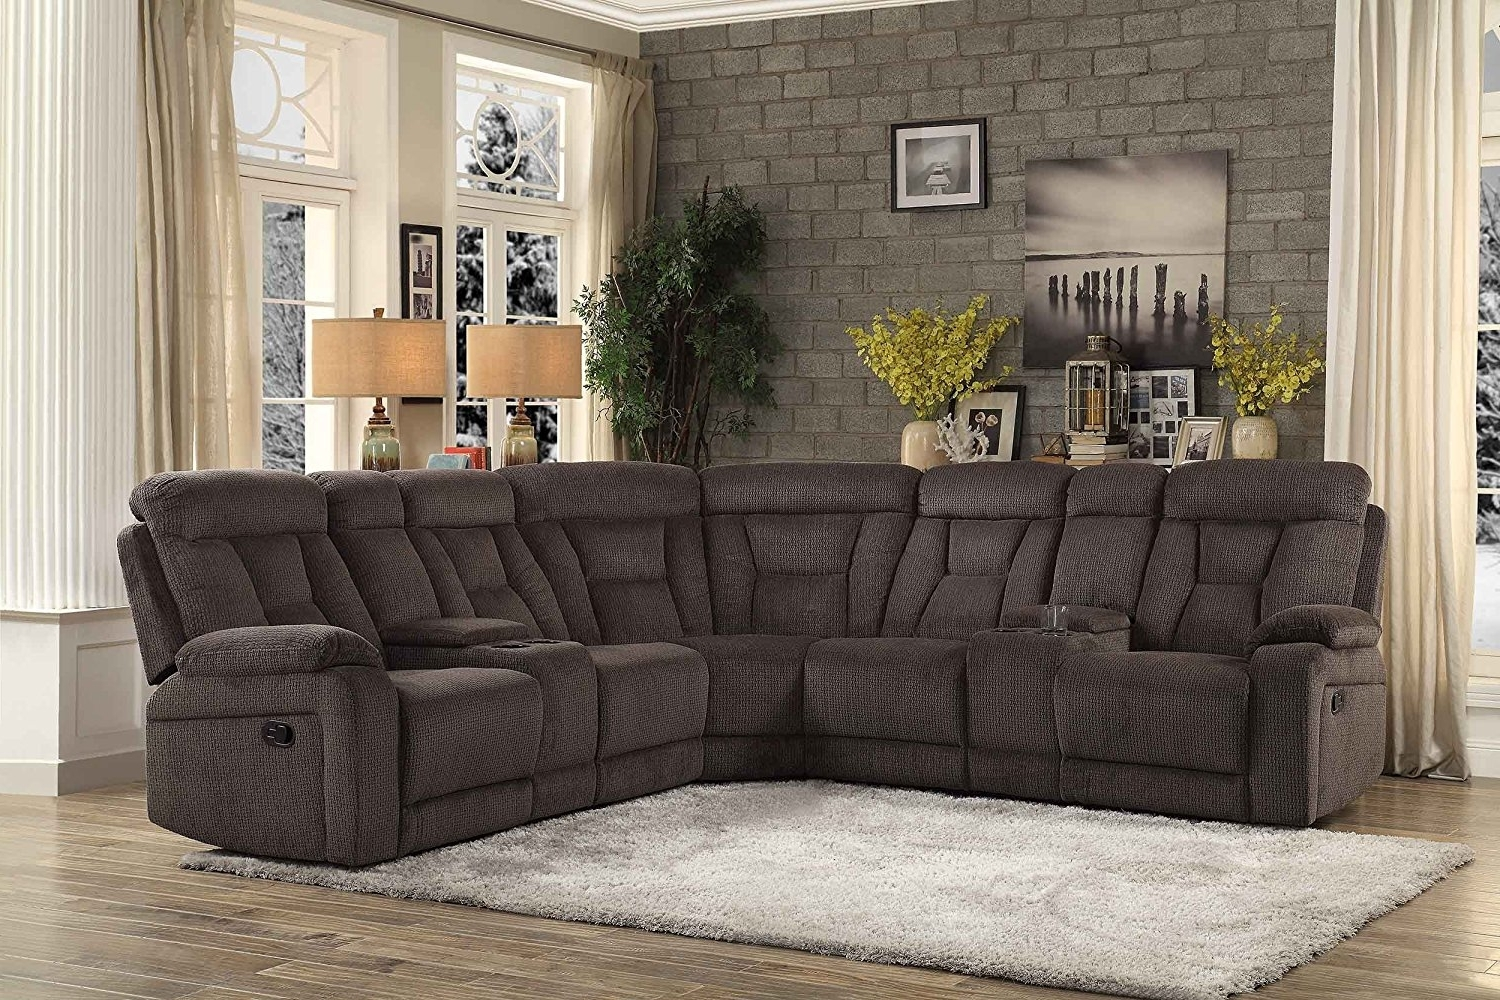 Elk Grove Ca Sectional Sofas Regarding Preferred Discount Sectional Sofa (Gallery 16 of 20)